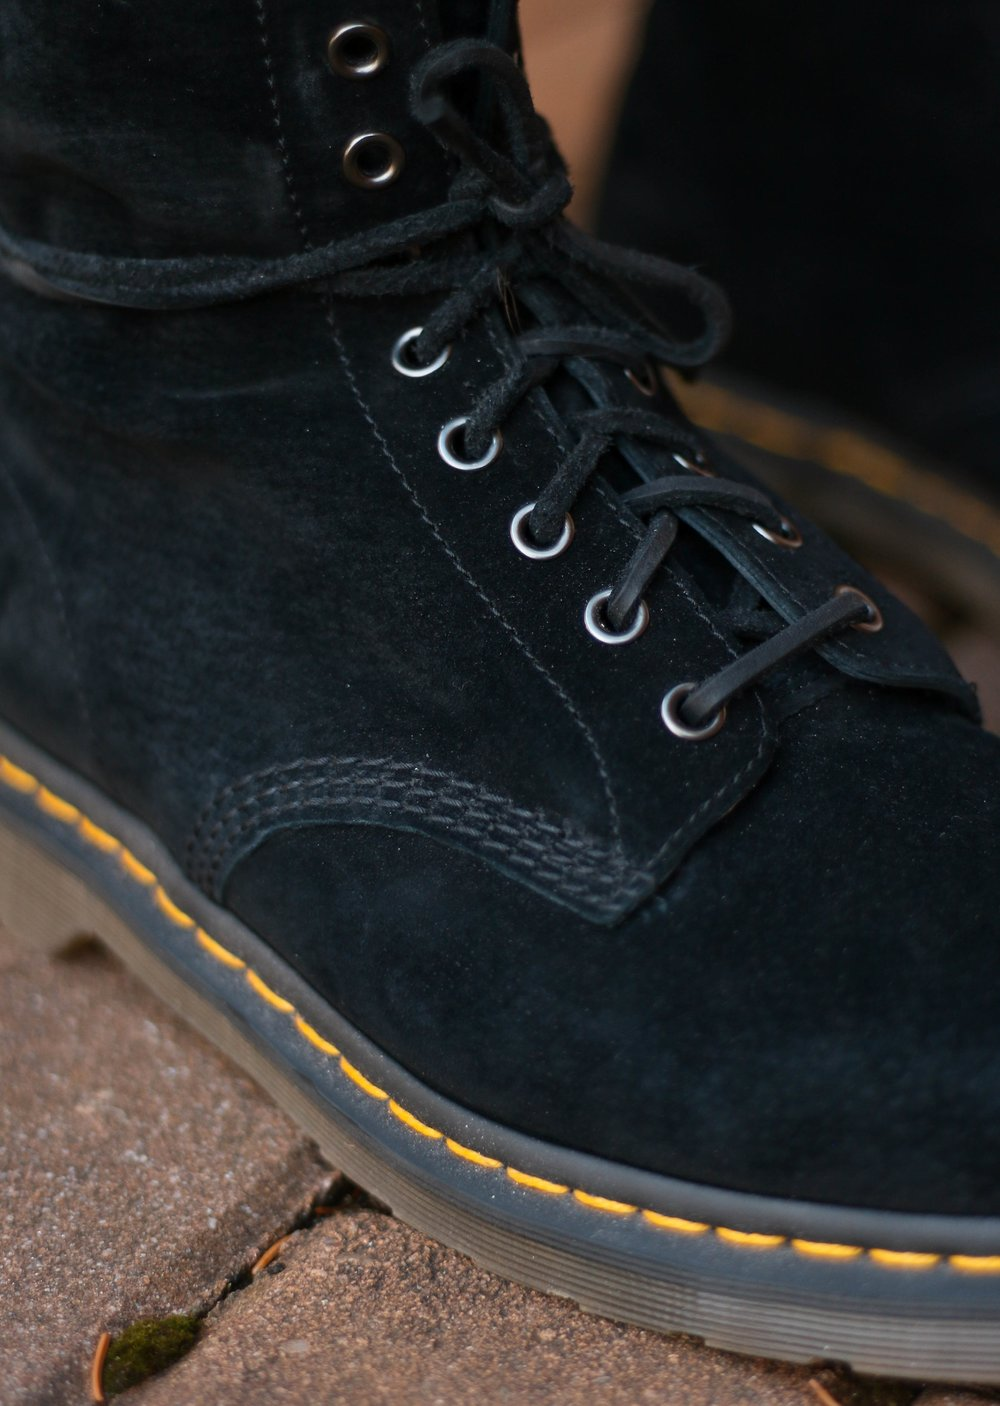 See that there is almost no space between the eyelets on these Doc Martens, indicating too much room in the boot, and a lot of friction.